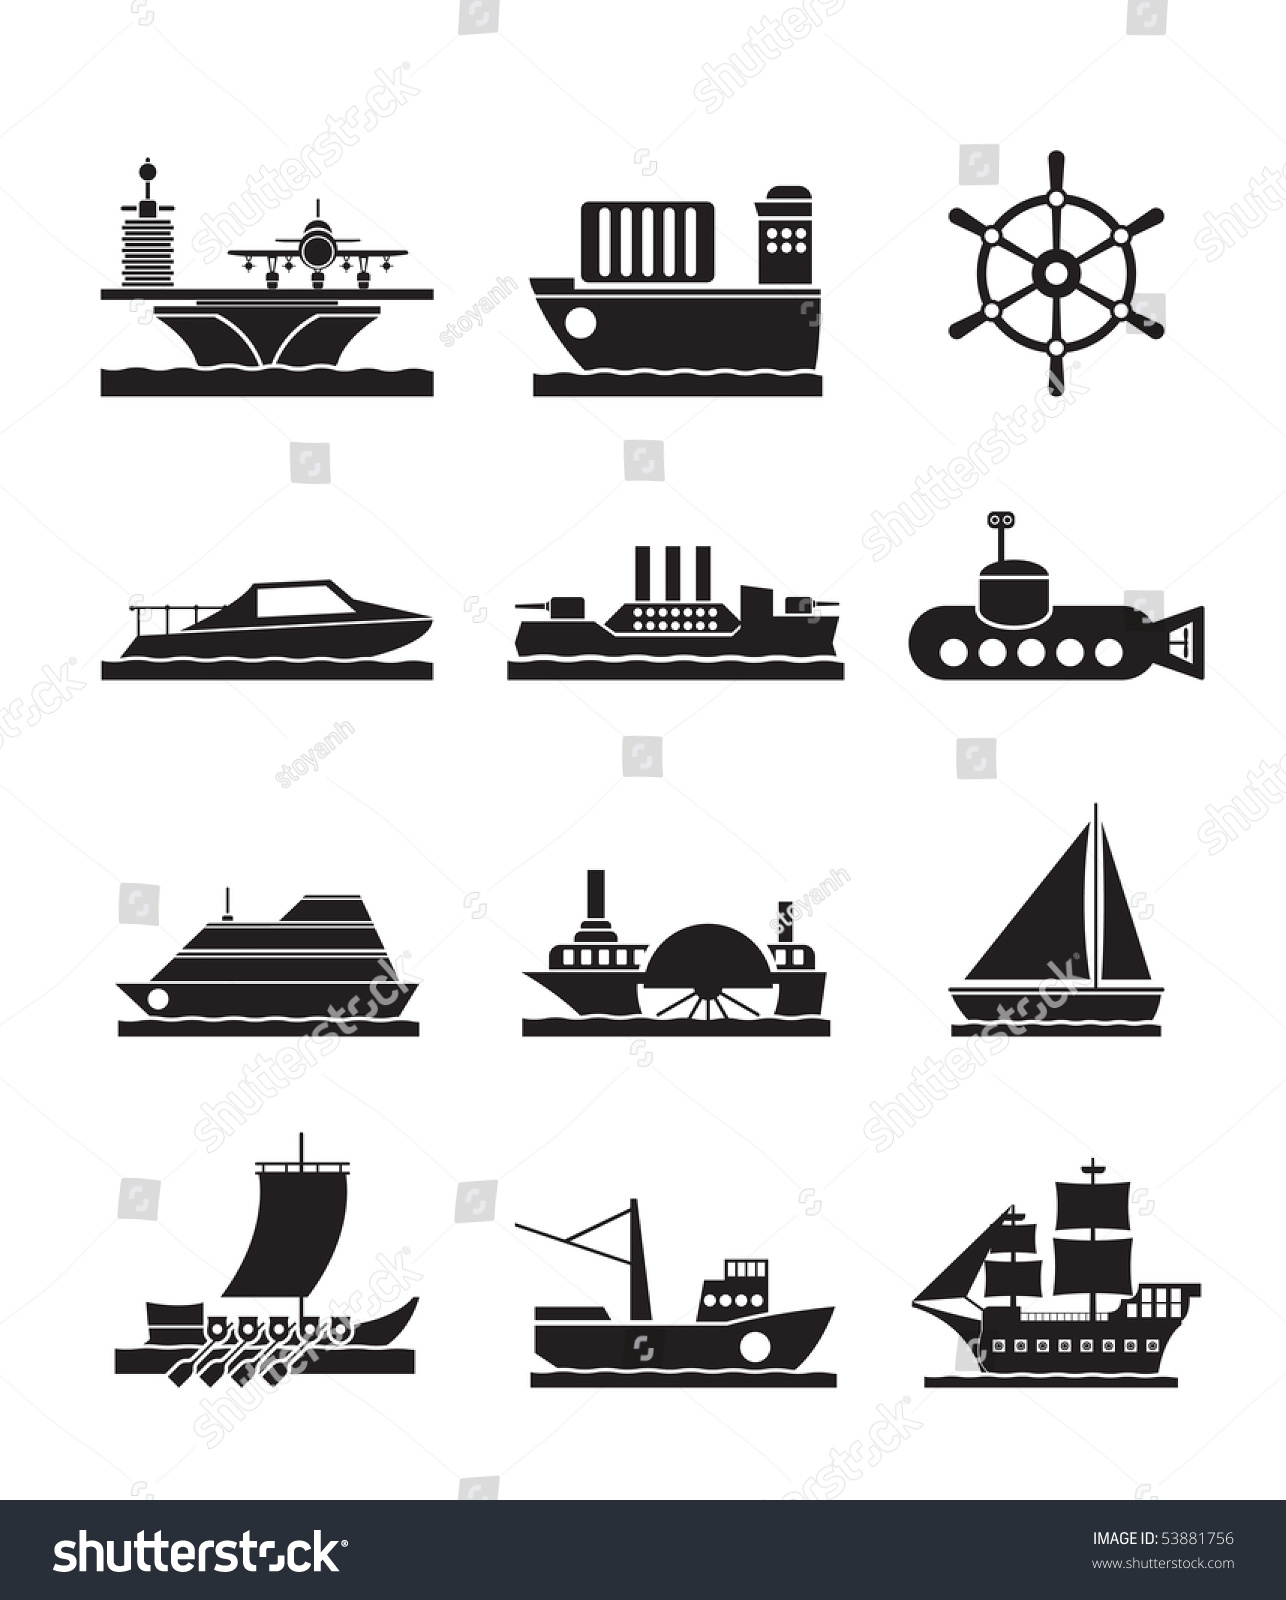 Different Types Boat Ship Icons Vector Stock Vector 53881756 ...